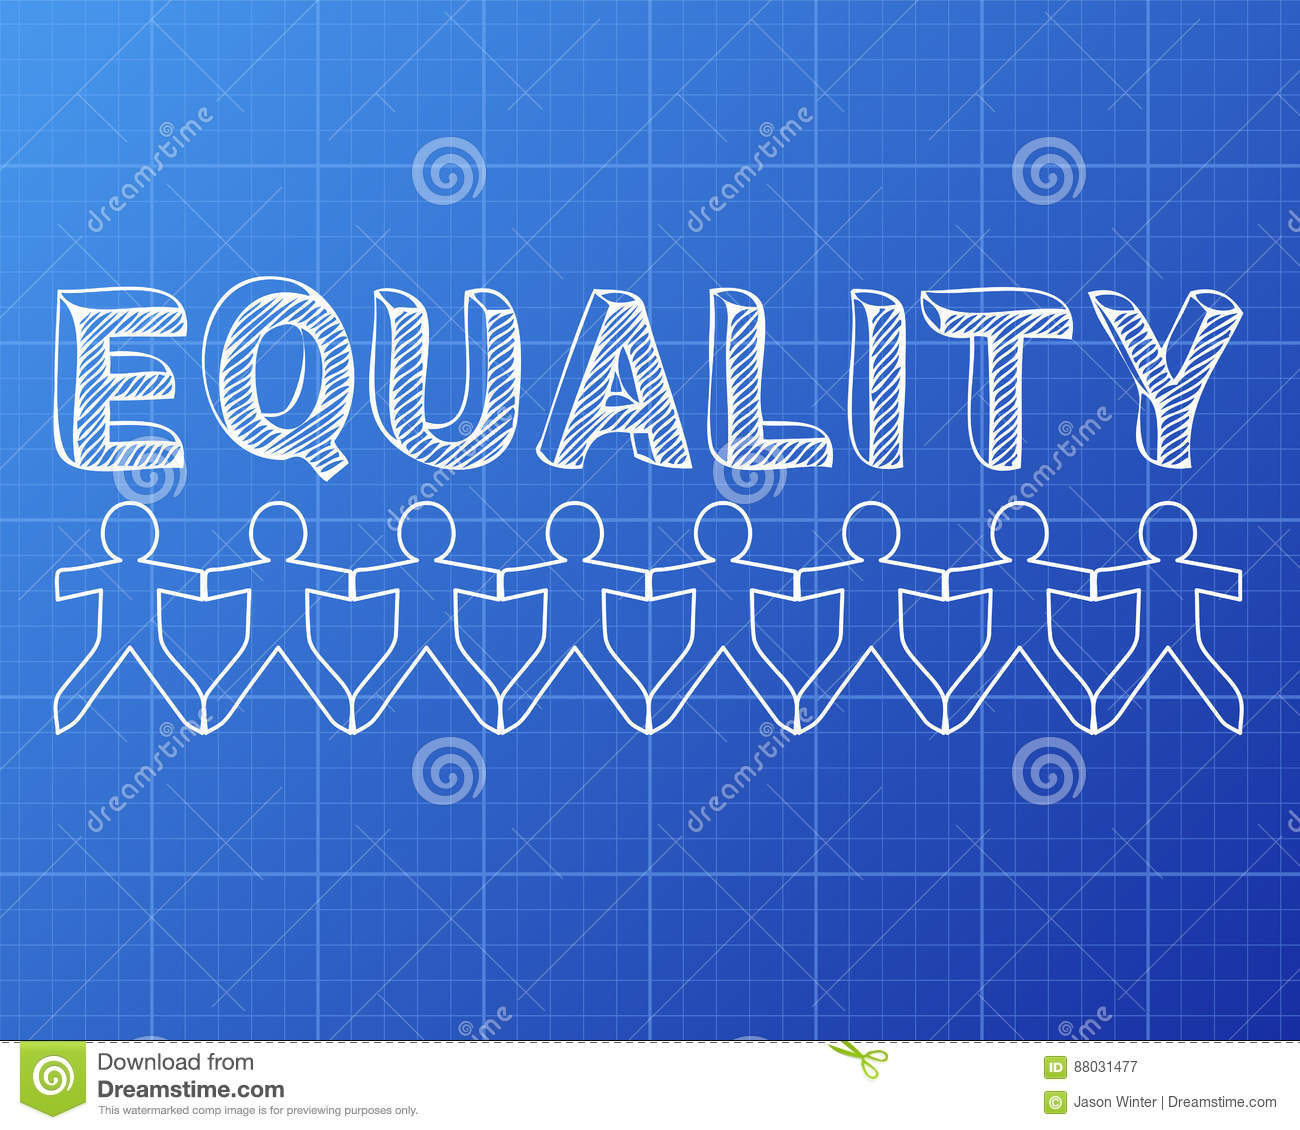 Equality people blueprint stock vector illustration of paper 88031477 download equality people blueprint stock vector illustration of paper 88031477 malvernweather Gallery